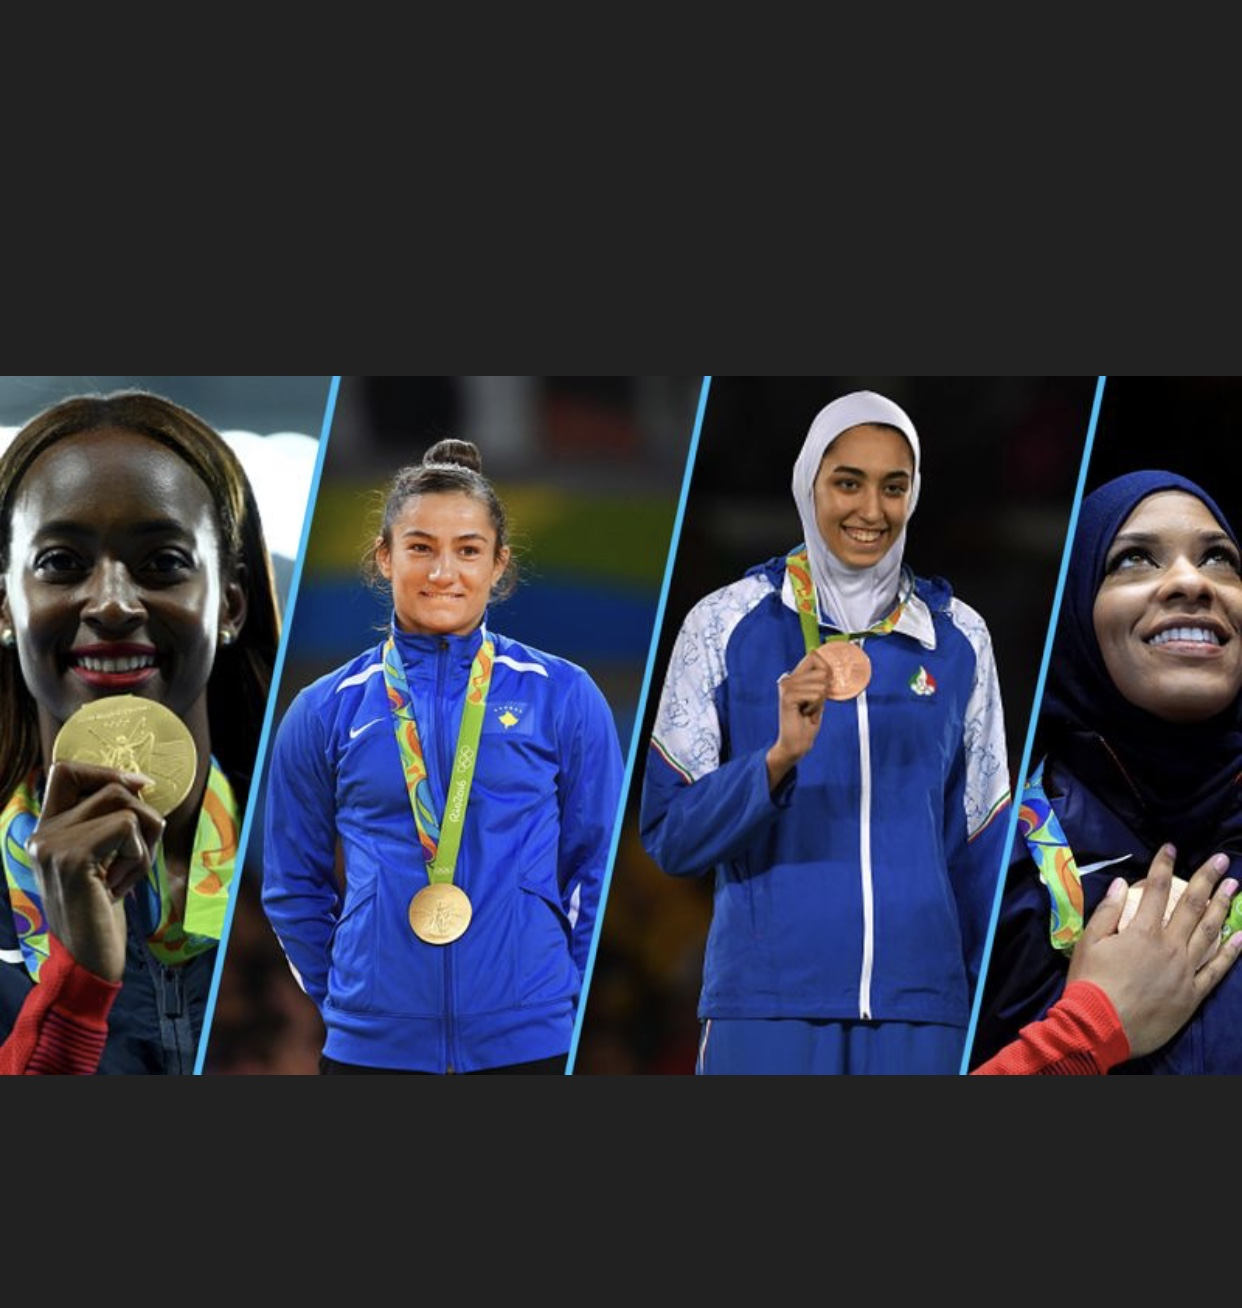 Due to their medal winning performances muslim olypians stand tall and proud